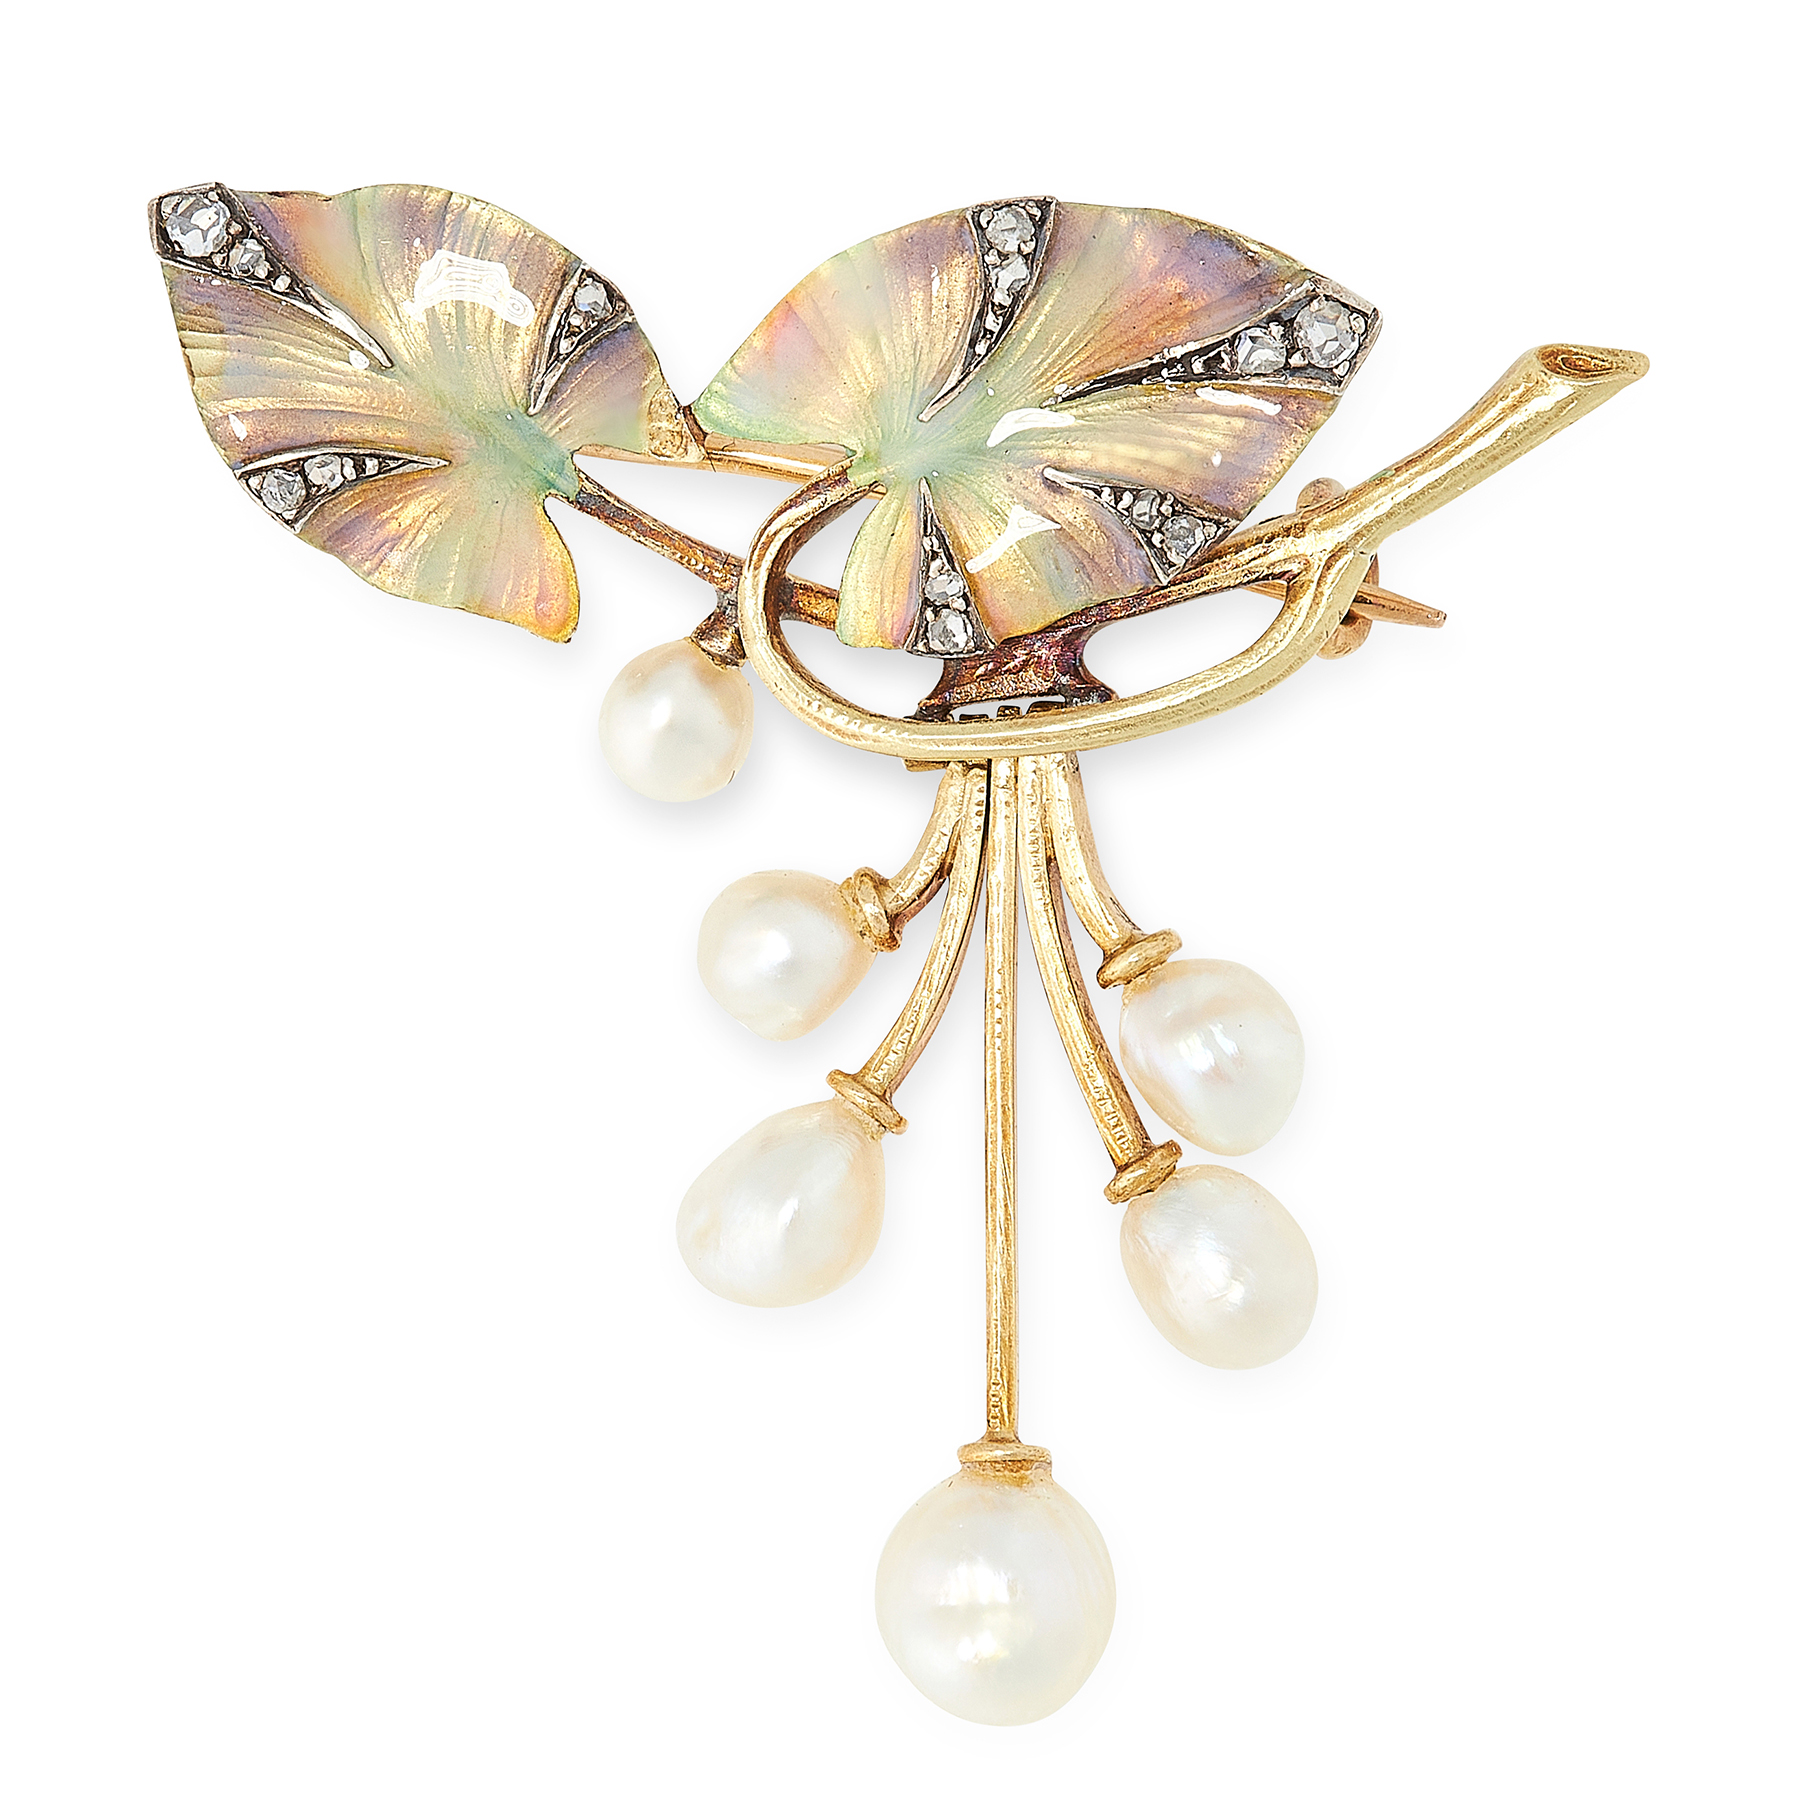 Lot 23 - AN ART NOUVEAU PEARL, ENAMEL AND DIAMOND BROOCH, EARLY 20TH CENTURY in 18ct yellow gold, designed as